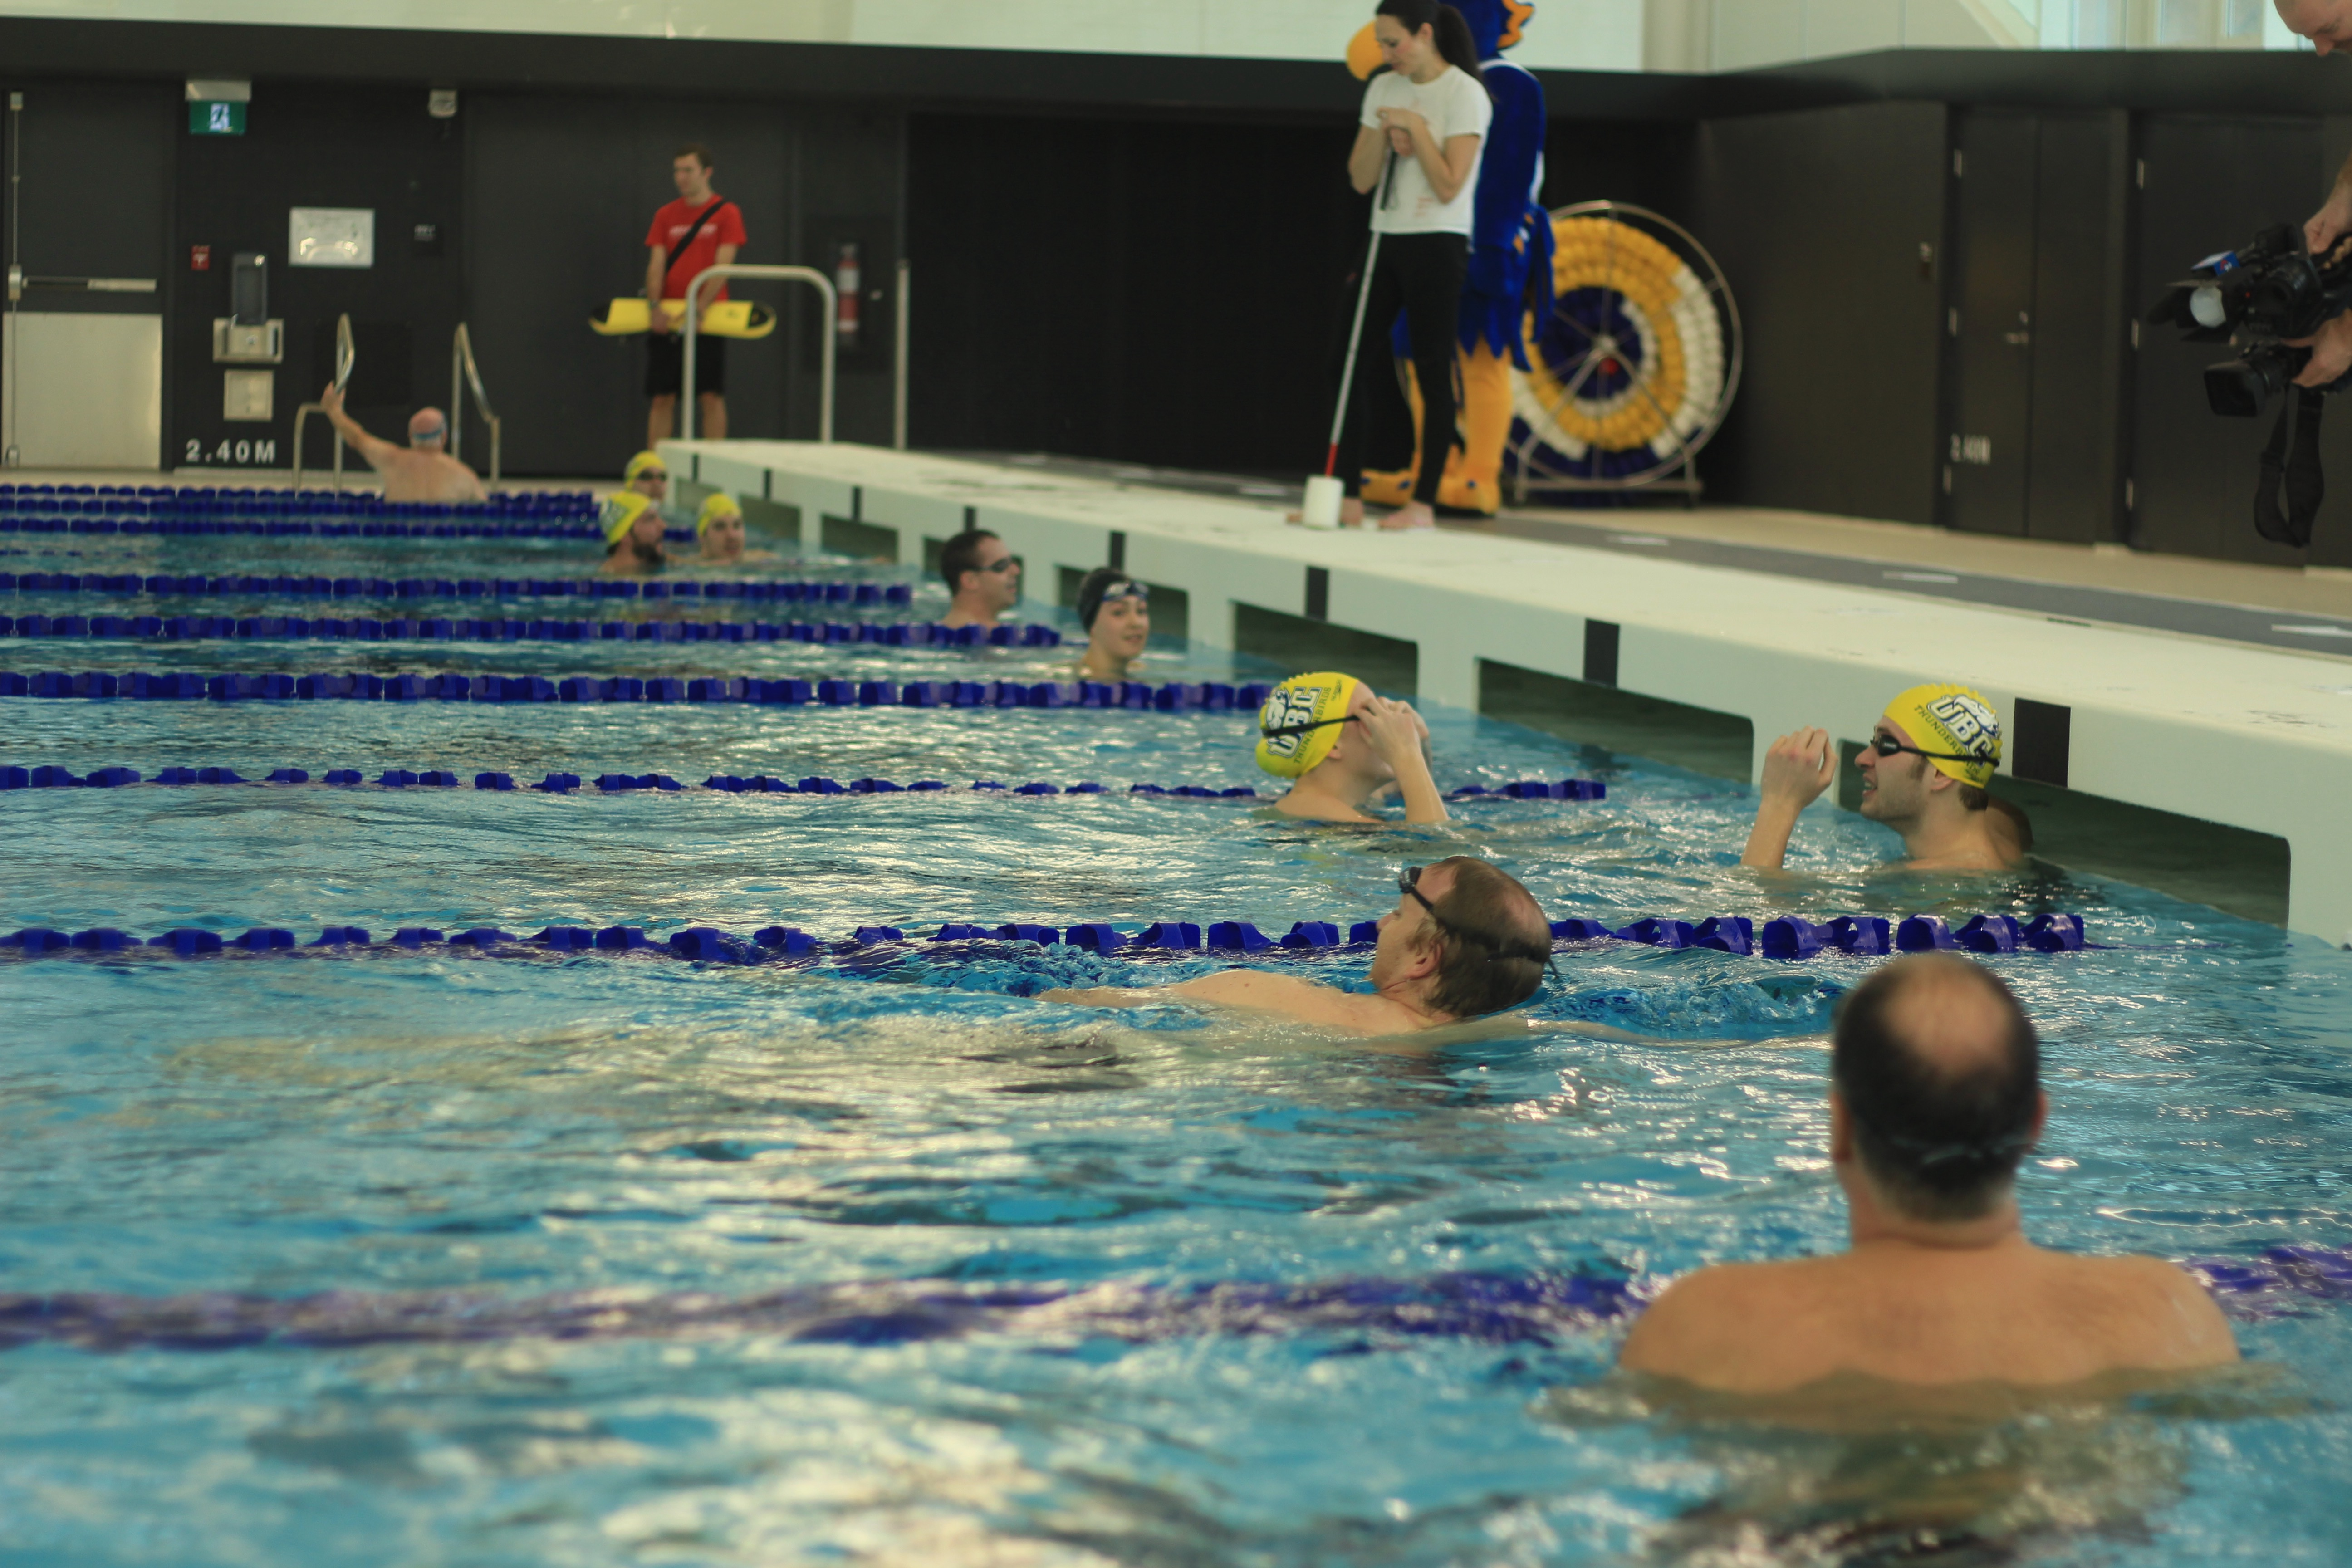 The first swim in the Aquatic Centre was a friendly between UBC Thunderbirds and alumni.